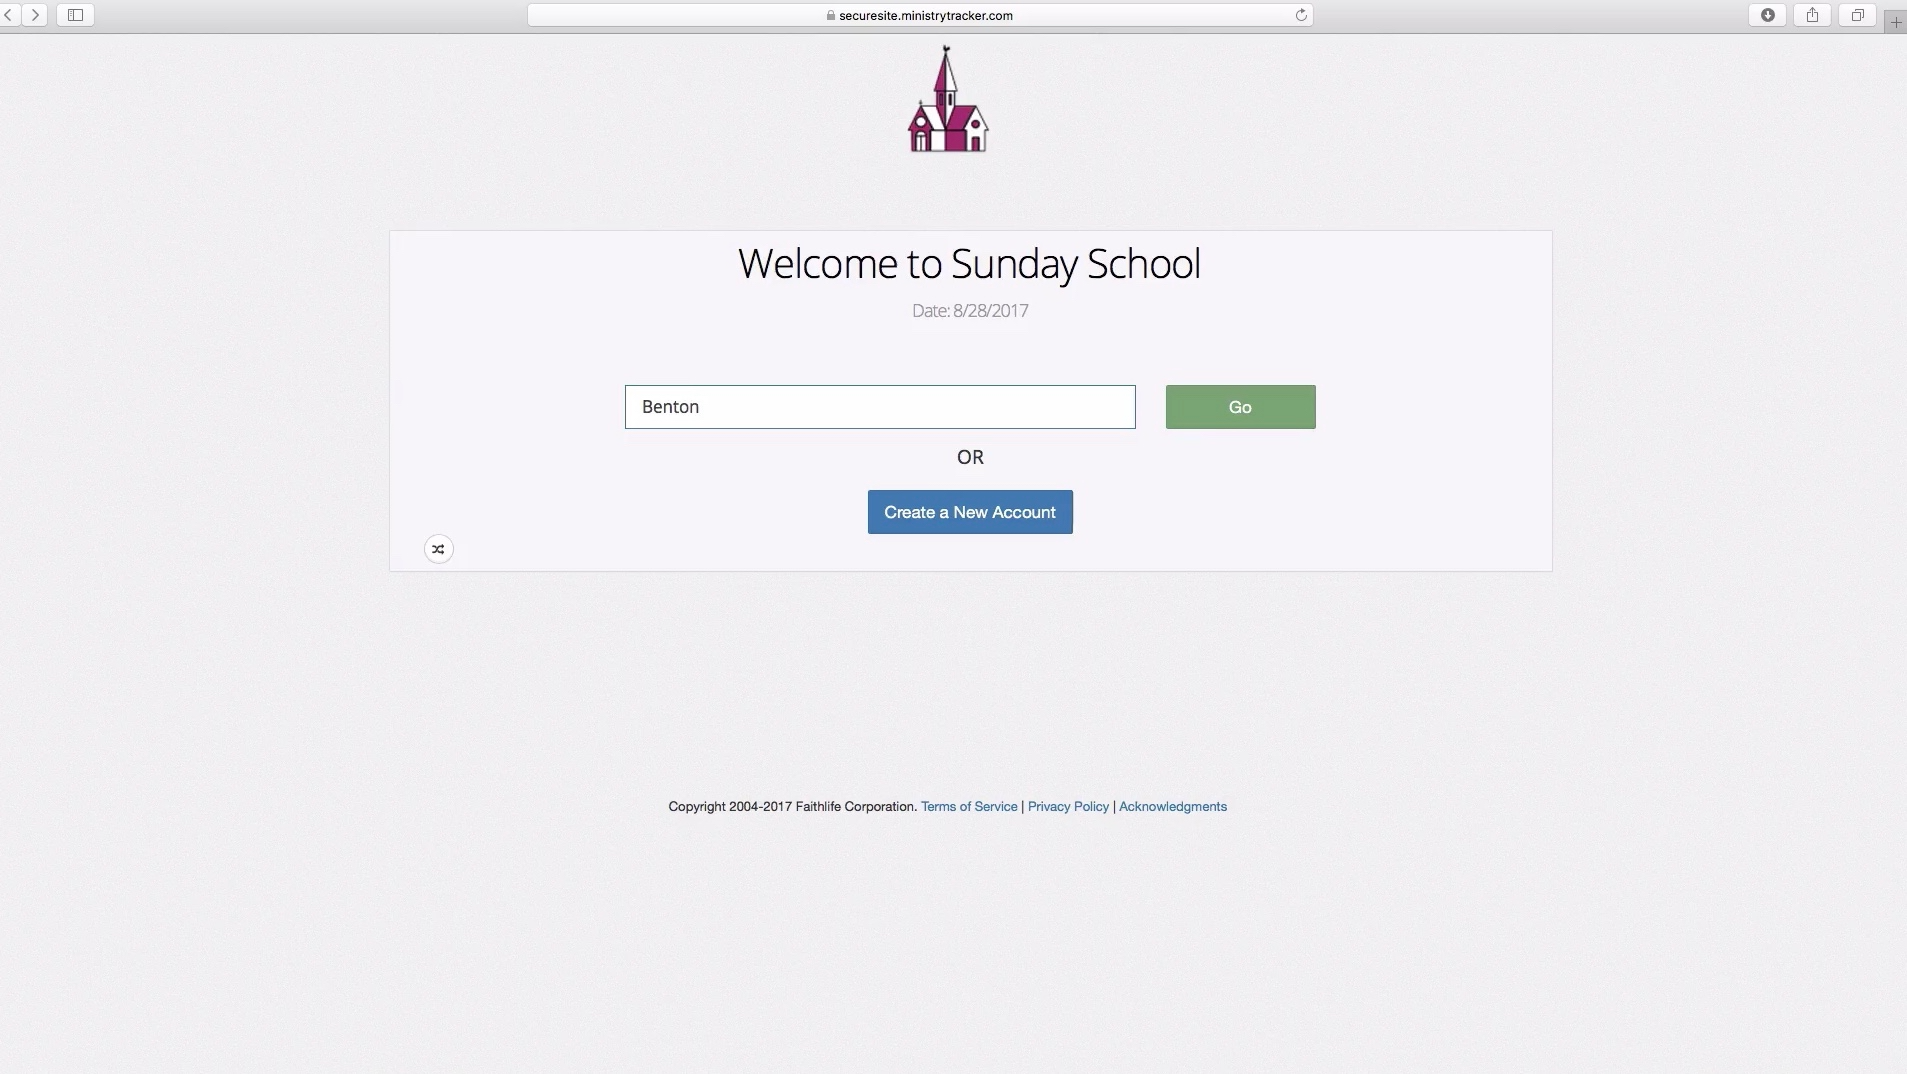 Check-ins for Sunday mornings and events are simple for everyone